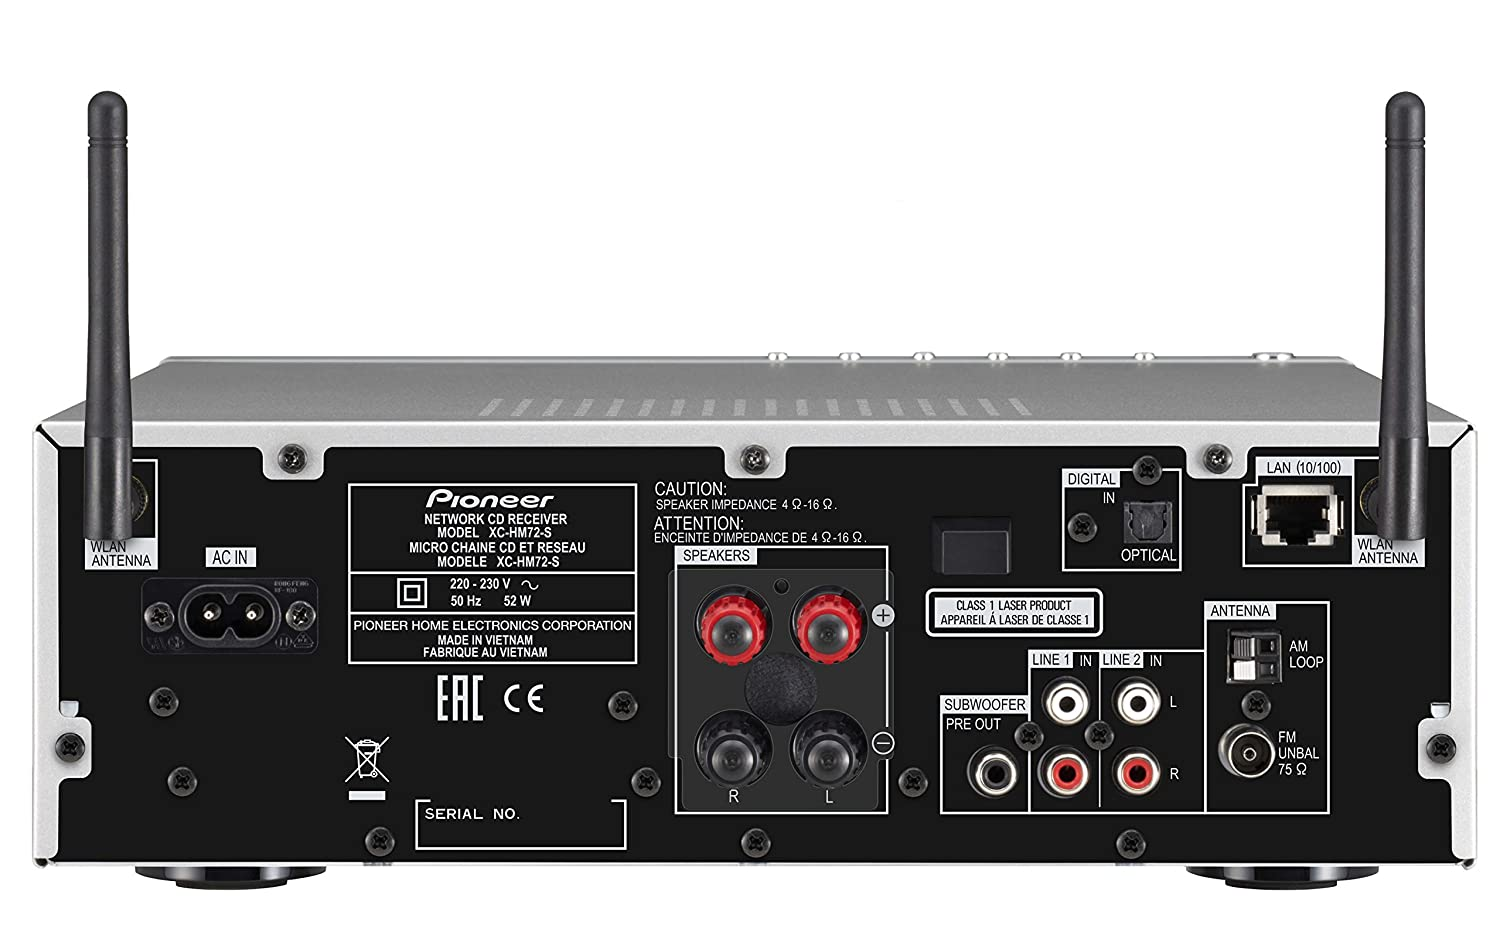 PIONEER X-HM72-S SOUND SYSTEM DRIVER FOR MAC DOWNLOAD